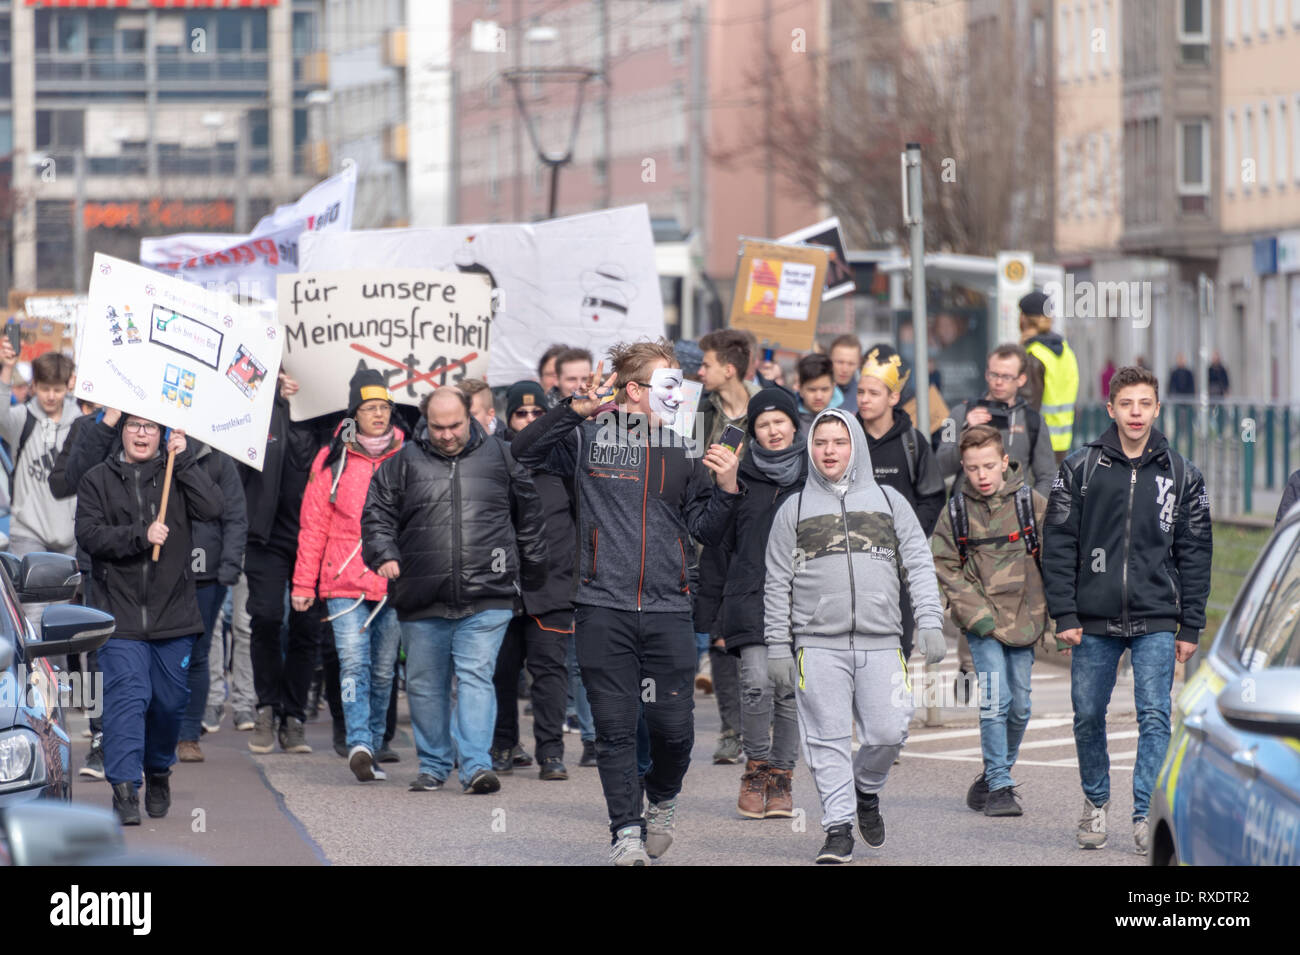 Magdeburg, Germany - 09th March, 2019: : In Magdeburg about 1000 predominantly younger people demonstrate against the EU copyright reform. The demonstrators fear censorship of the Internet if Article 13 is implemented. Credit: Mattis Kaminer/Alamy Live News Stock Photo